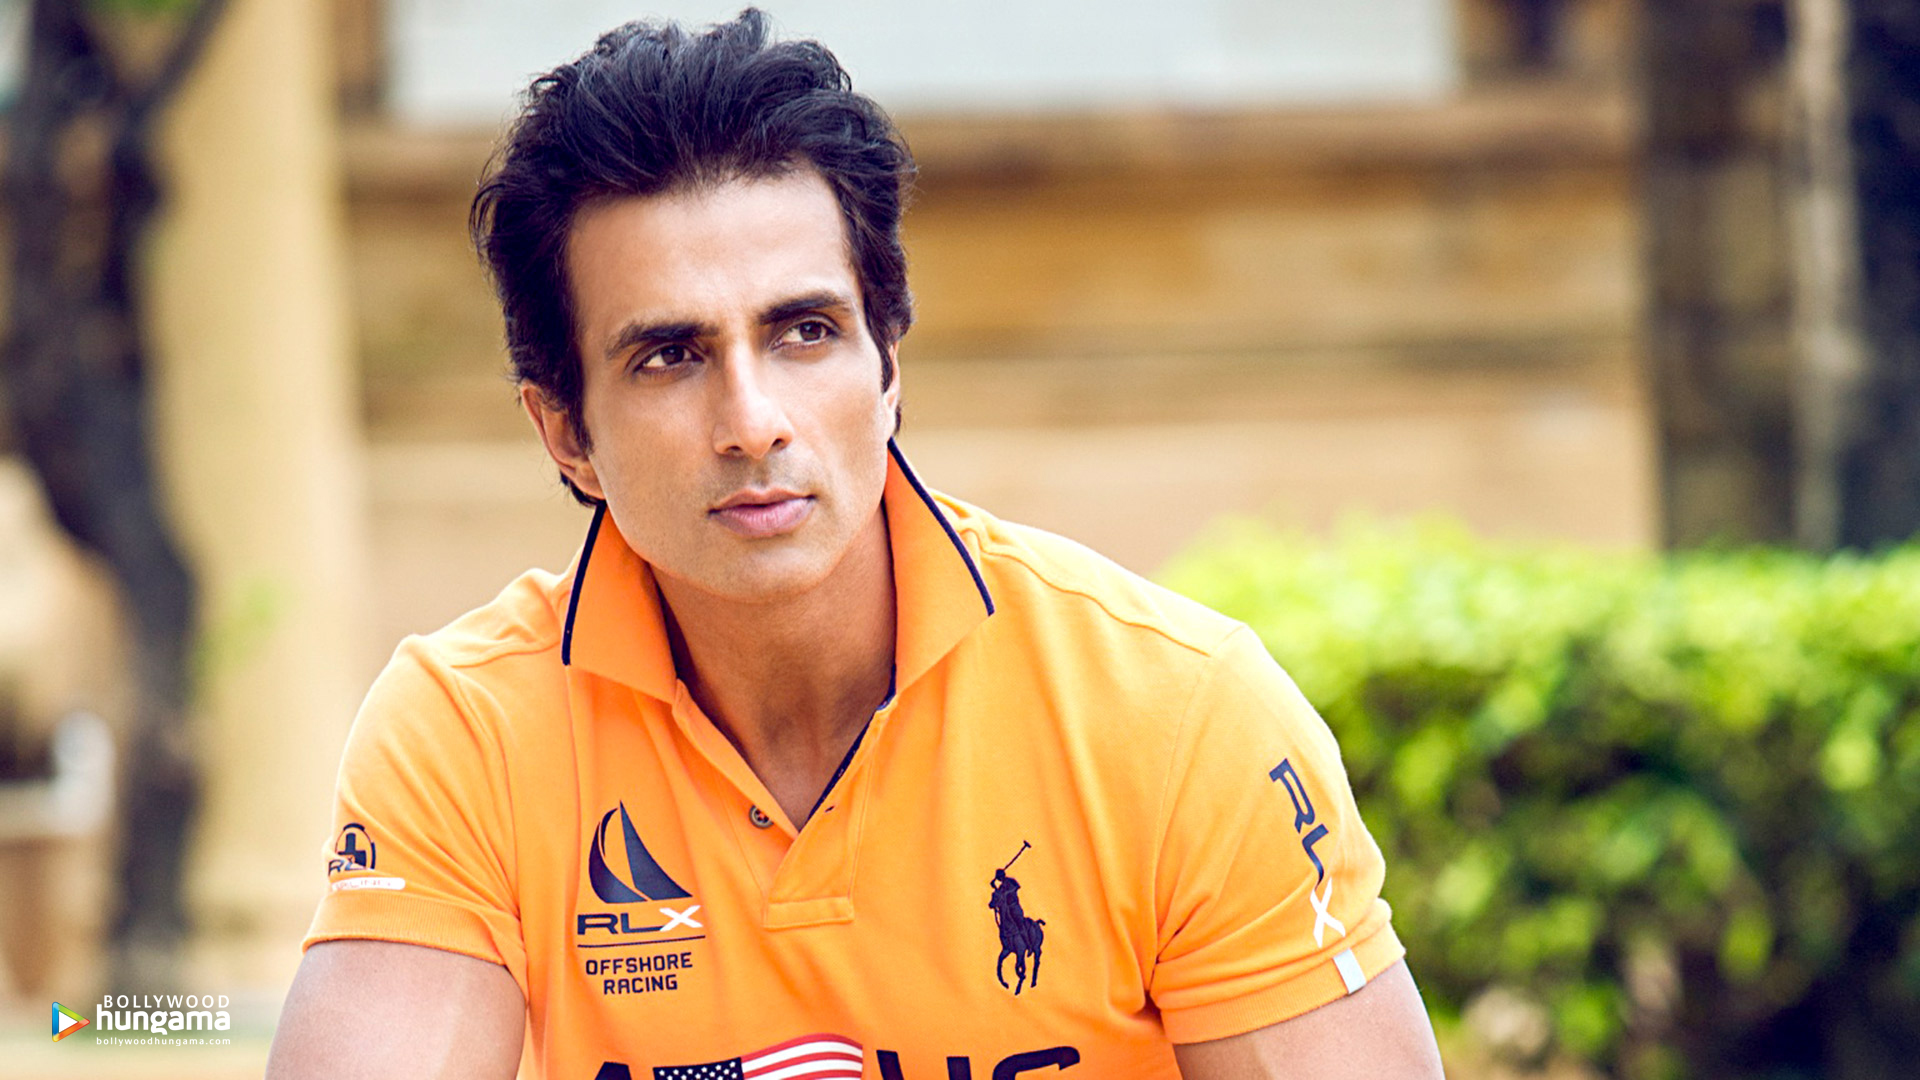 Sonu Sood Biography, Age, Education, Wife, Date of Birth & More 3